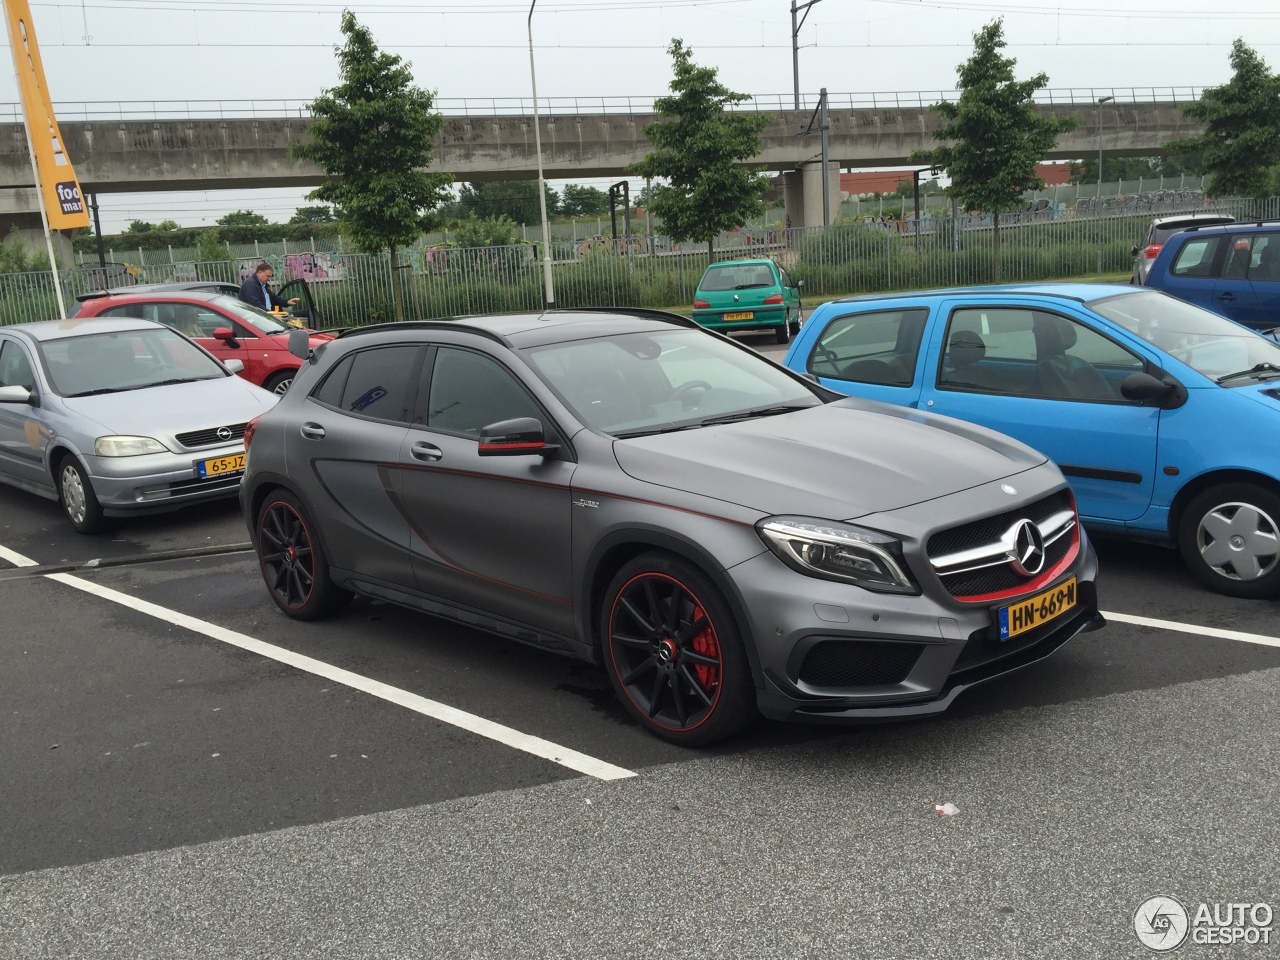 Mercedes benz gla 45 amg edition 1 17 june 2016 autogespot for Mercedes benz gla 45 amg